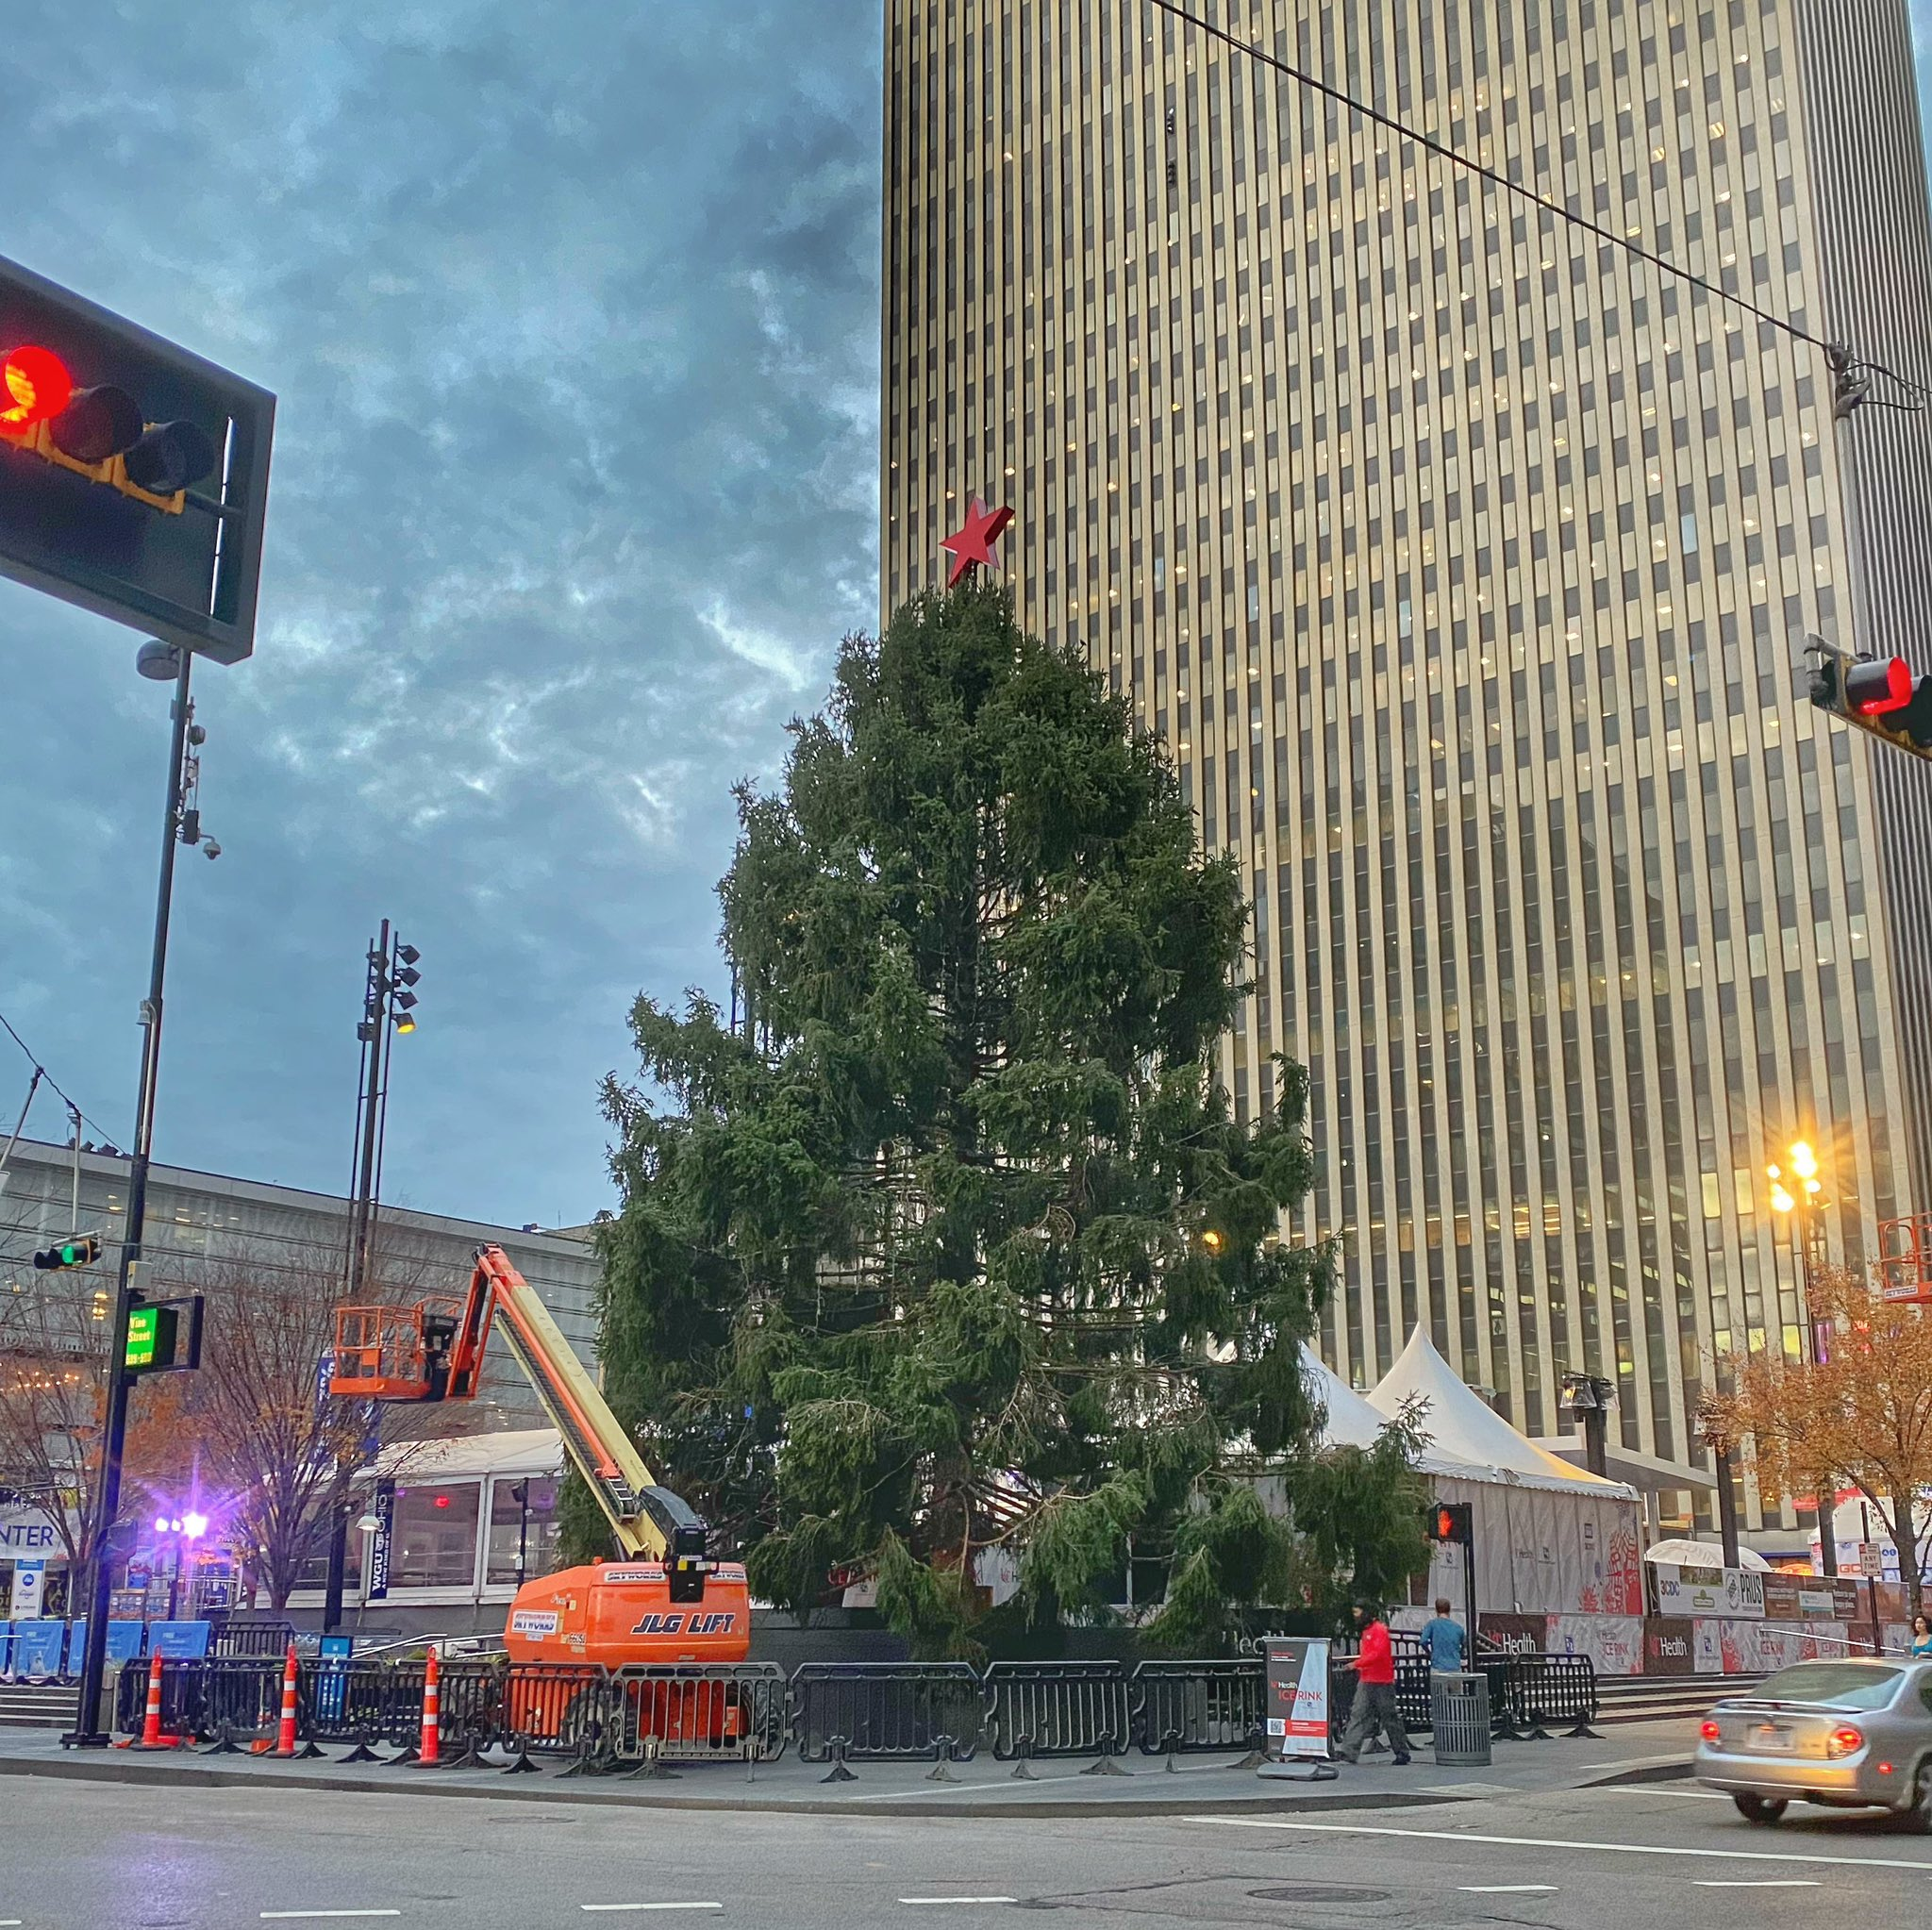 The Fountain Square Christmas tree made headlines this year because it looked a little haggard while it was being placed, and we're thankful it's looking mighty full after crews worked their magic. Though 2020's been anything but routine, it's reassuring to see an annual holiday tradition continue. / Image: Bob Schwartz // Published: 11.26.20